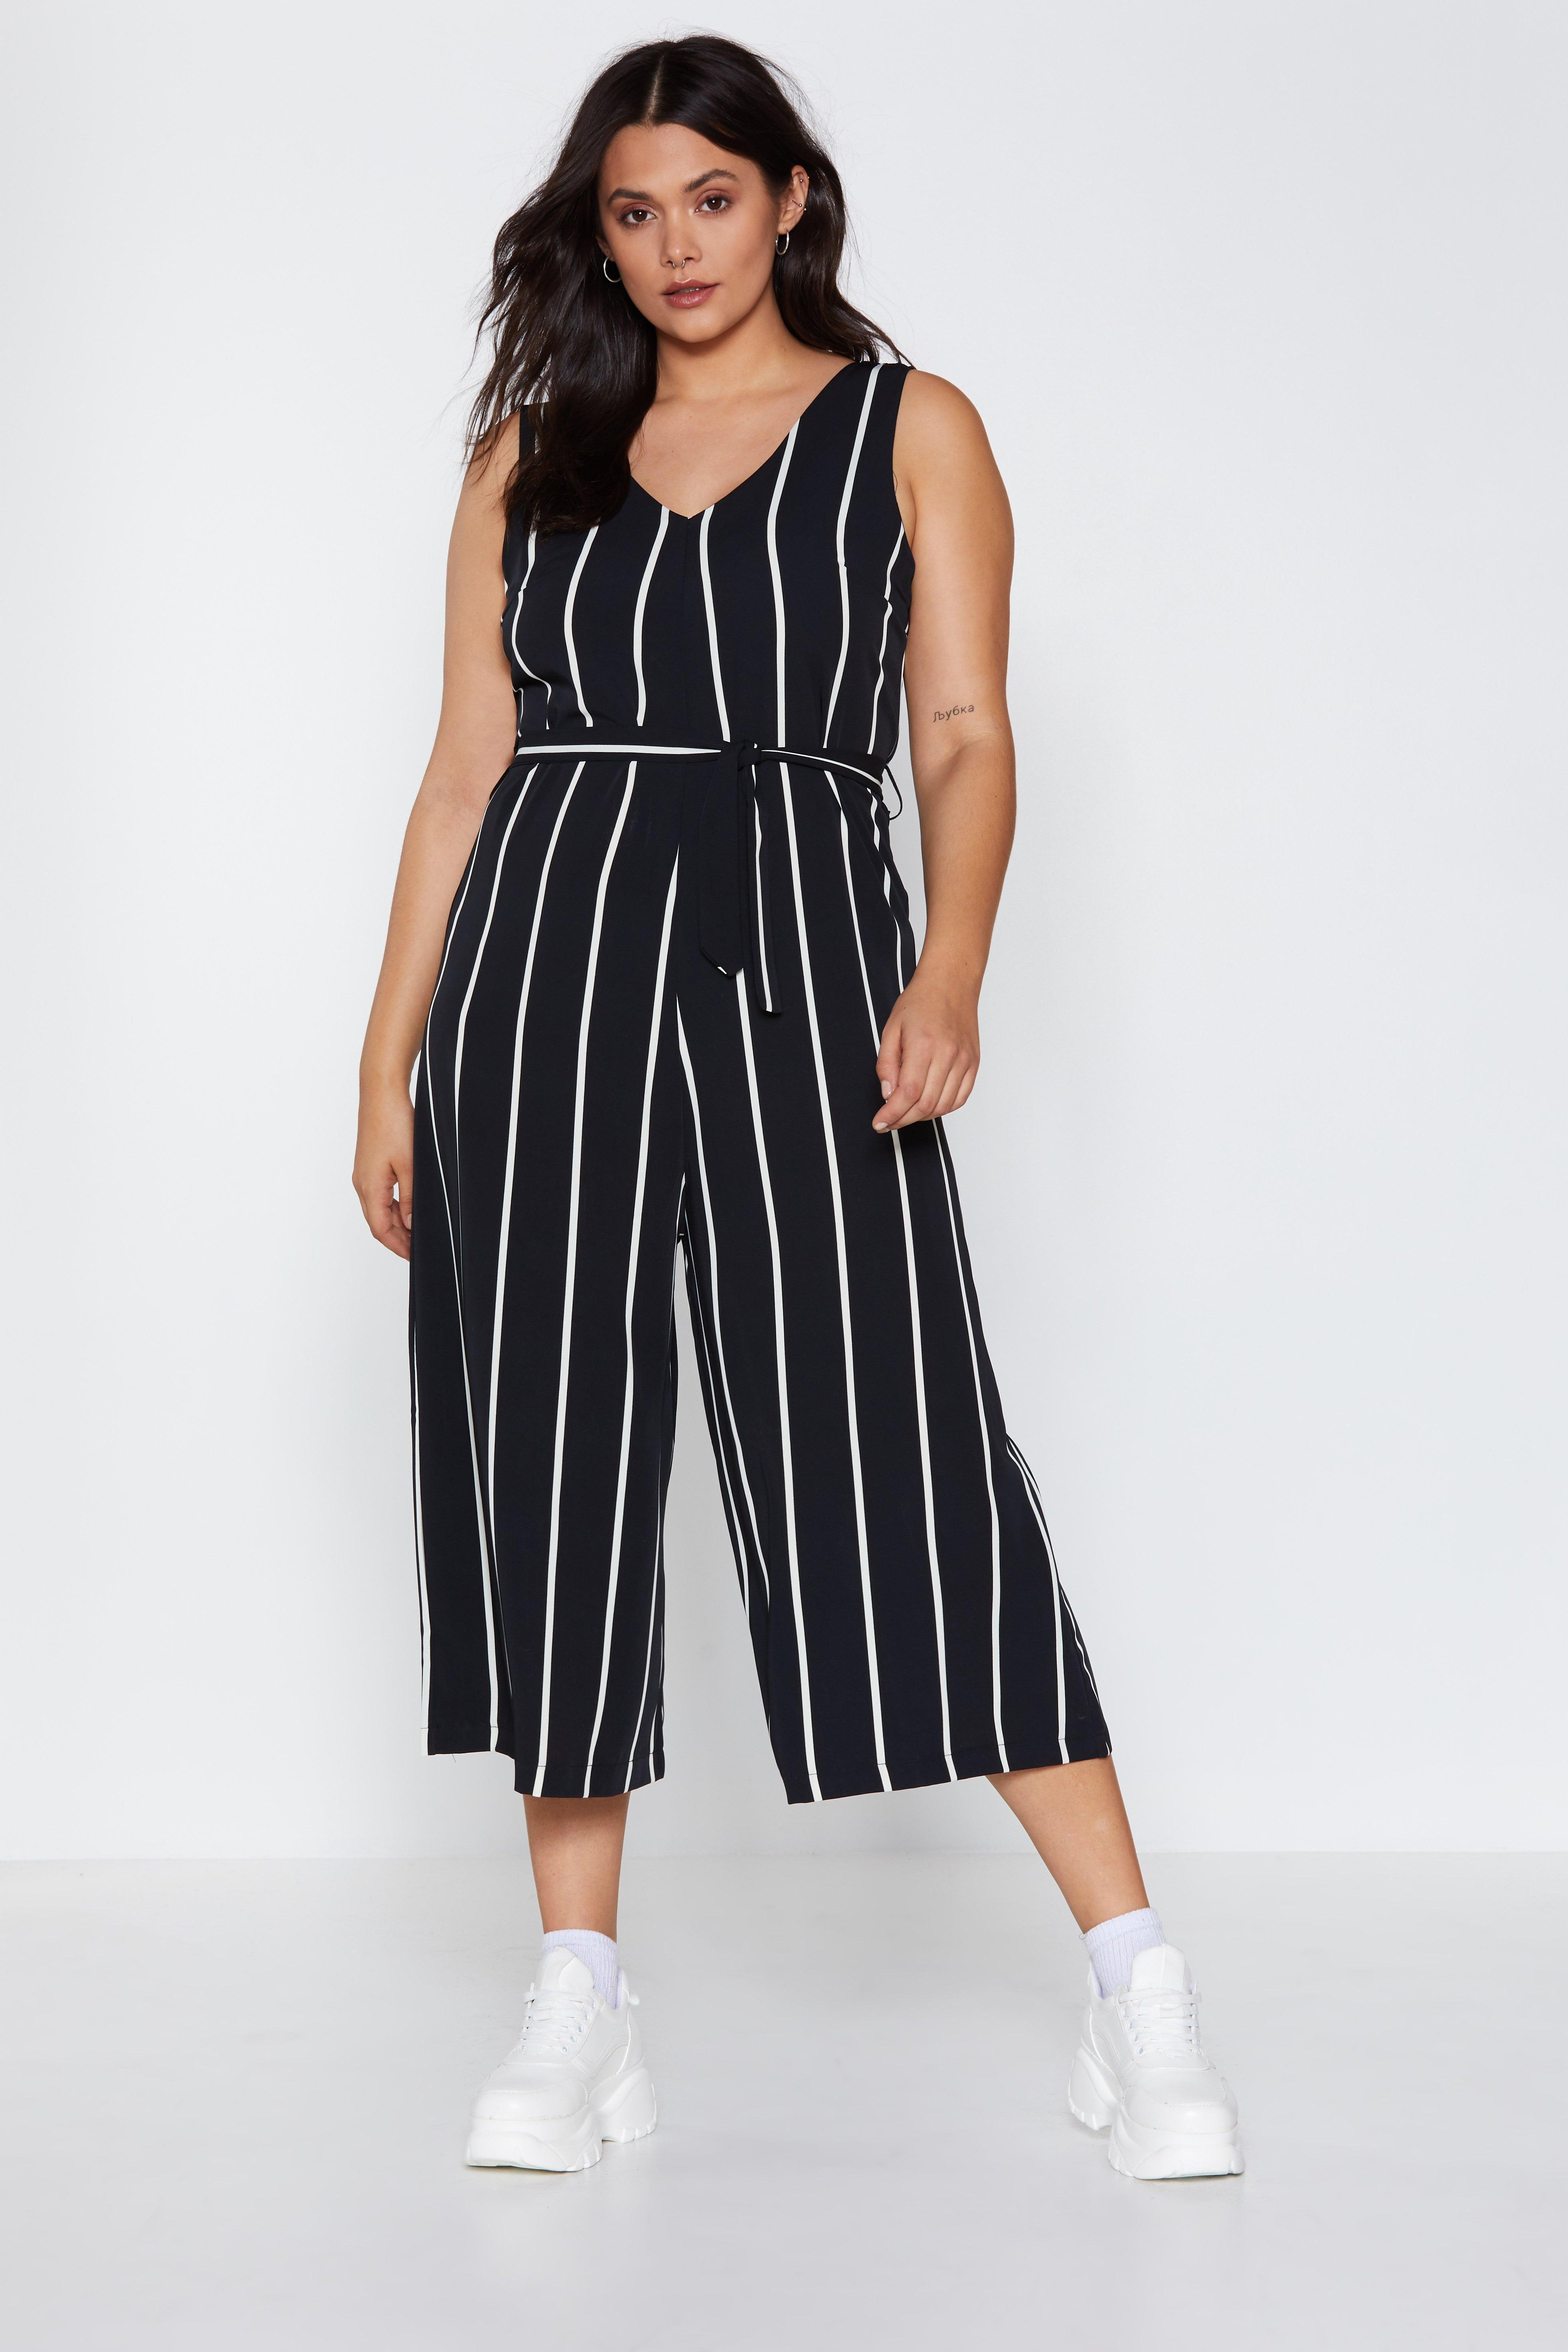 55cba3a4d03 Shop Nasty Gal Jumpsuit for Women - Obsessory